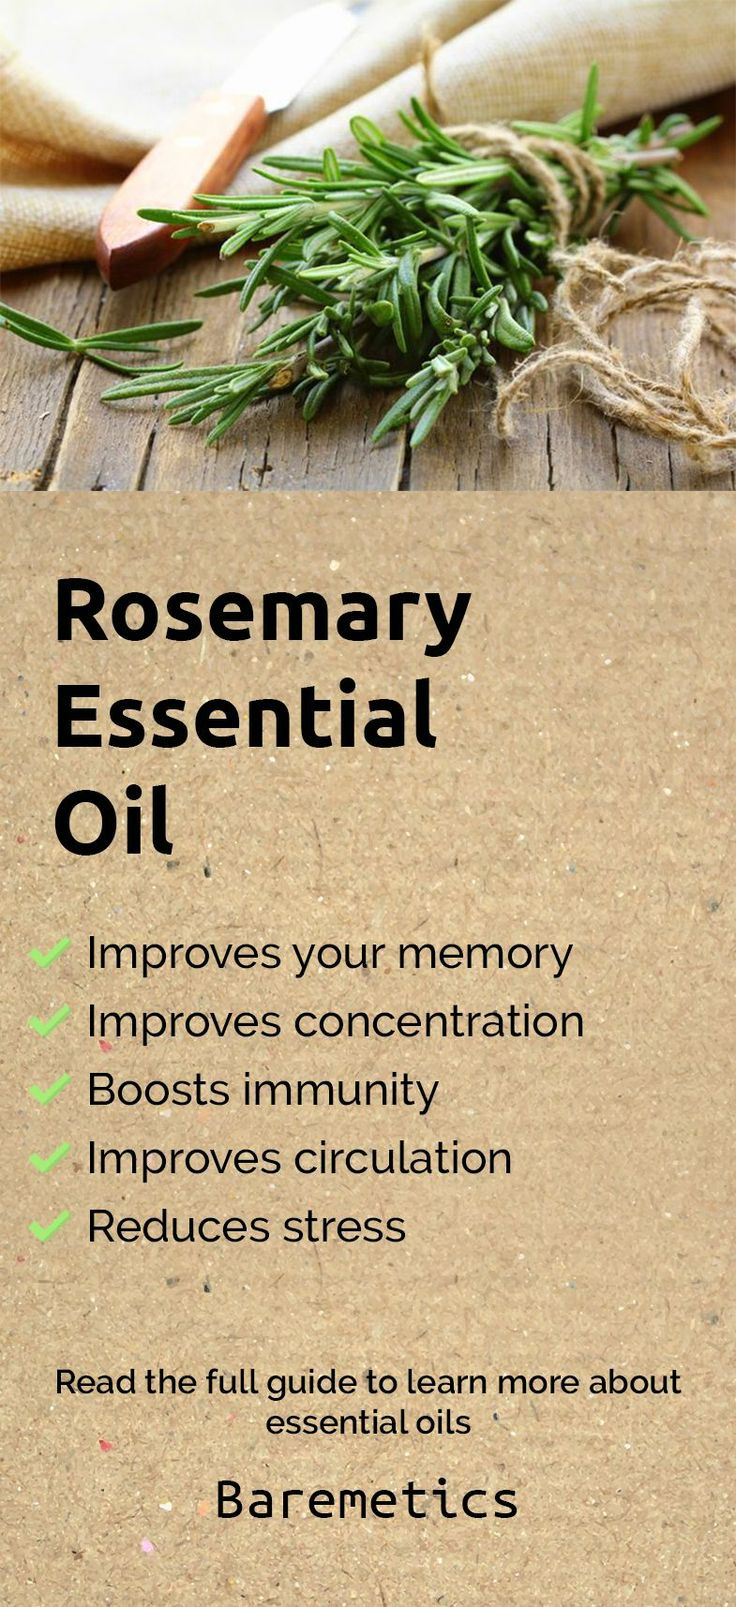 Rosemary essential oil reduces stress, relieves anxiety, improves your memory skills, improves concentration, relieves headaches and improves blood circulation. Dilute a few drops in your favourite lotion and massage it into your skin to improve your circulation or use an oil diffuser to spread the aroma to help with concentration and reducing stress. Learn more about rosemary and other essential oils in this complete guide by clicking on the image above! :)